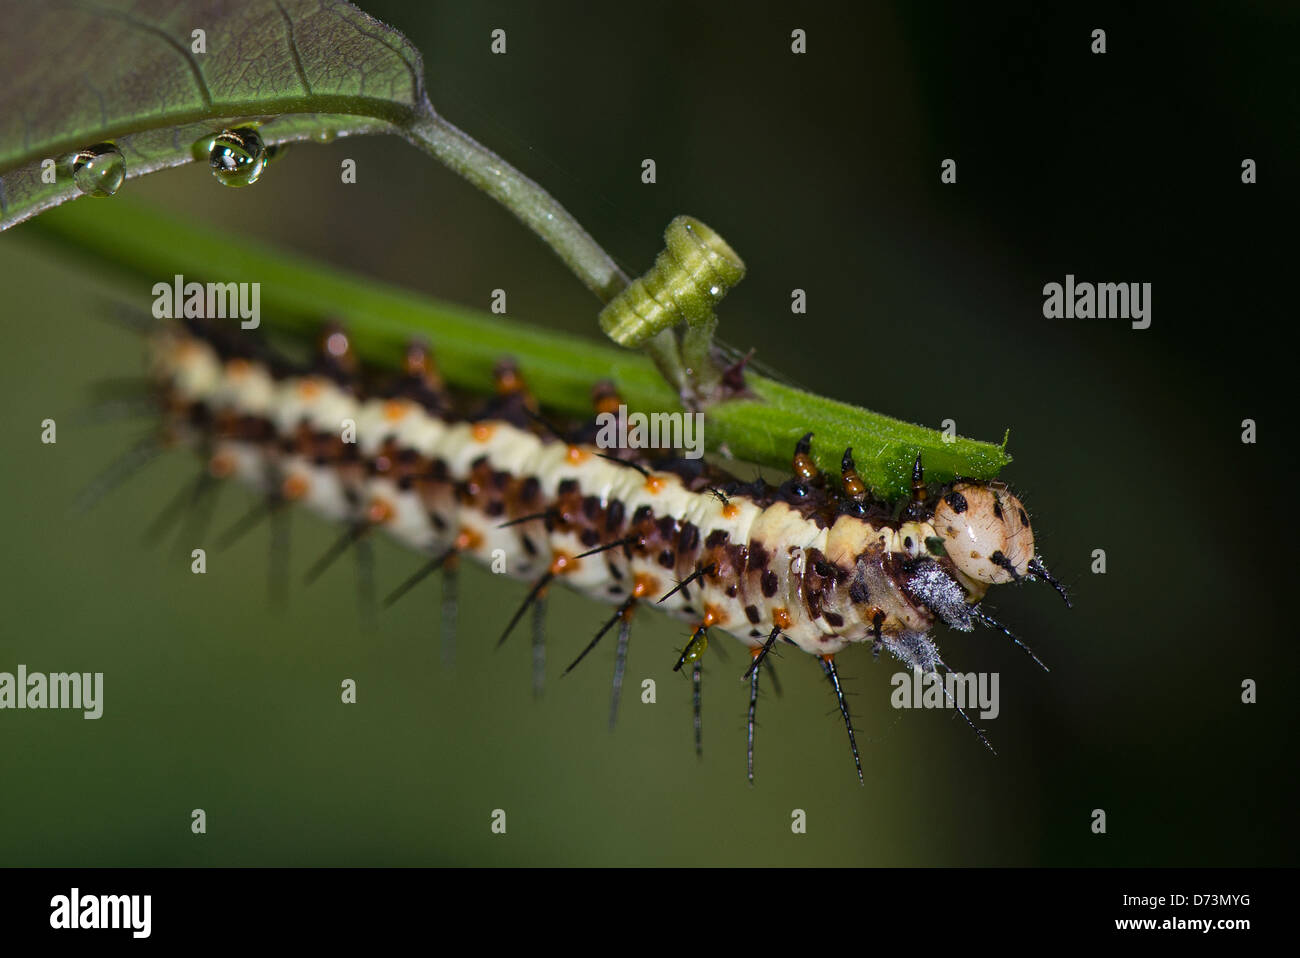 A Caterpillar of the Red Postman butterfly - Stock Image